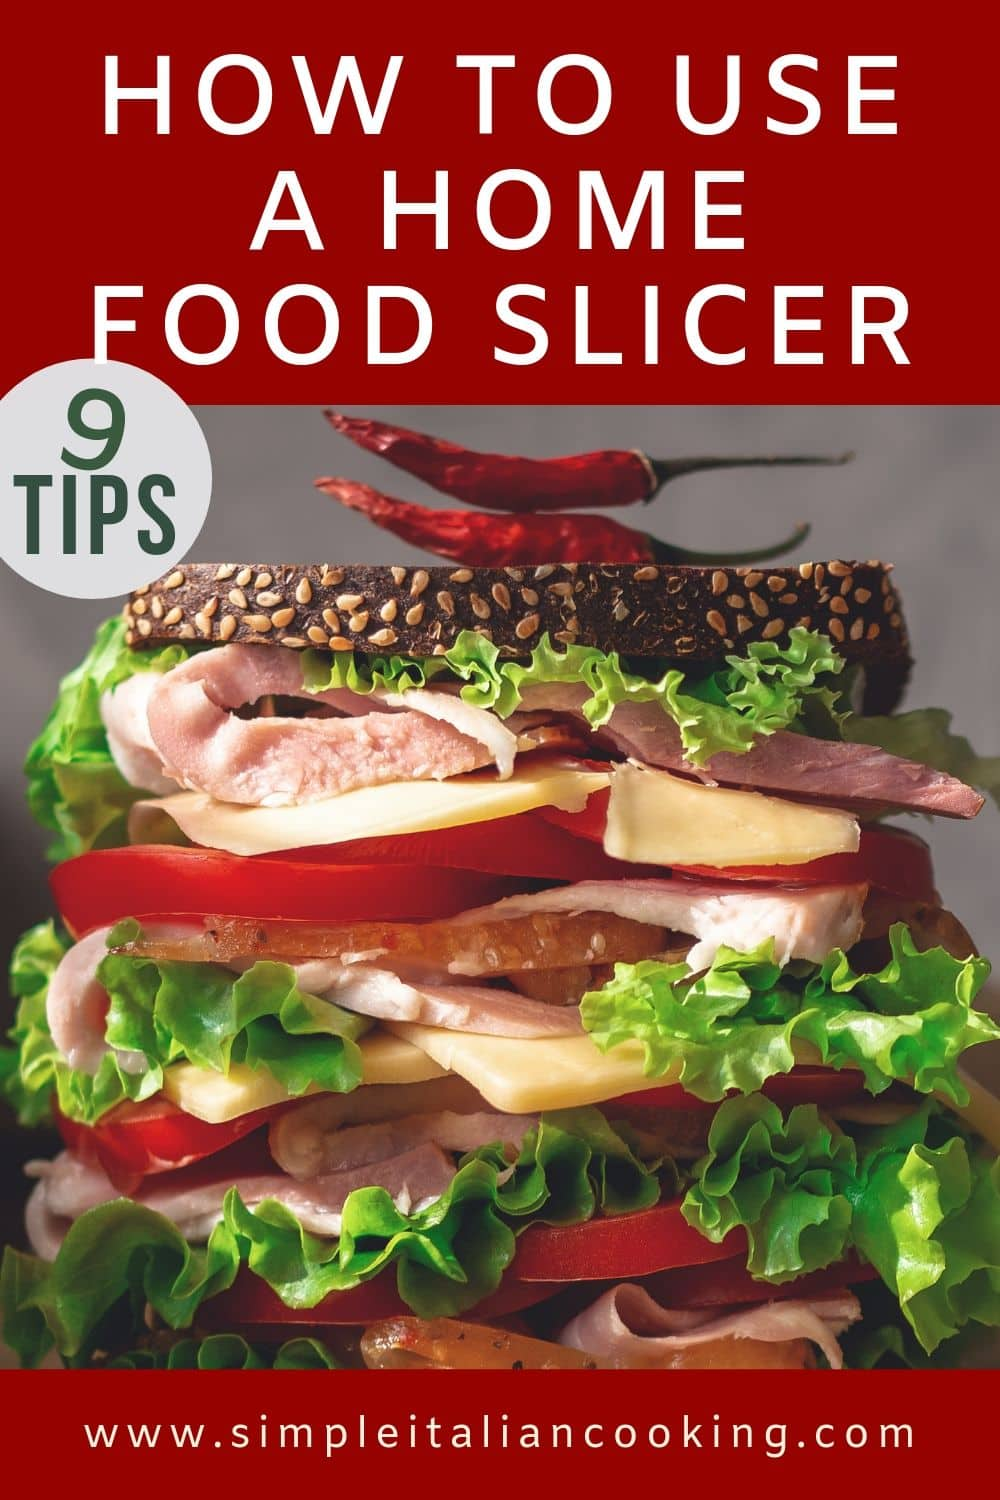 Useful Tips for How to Use a Home Meat Slicer